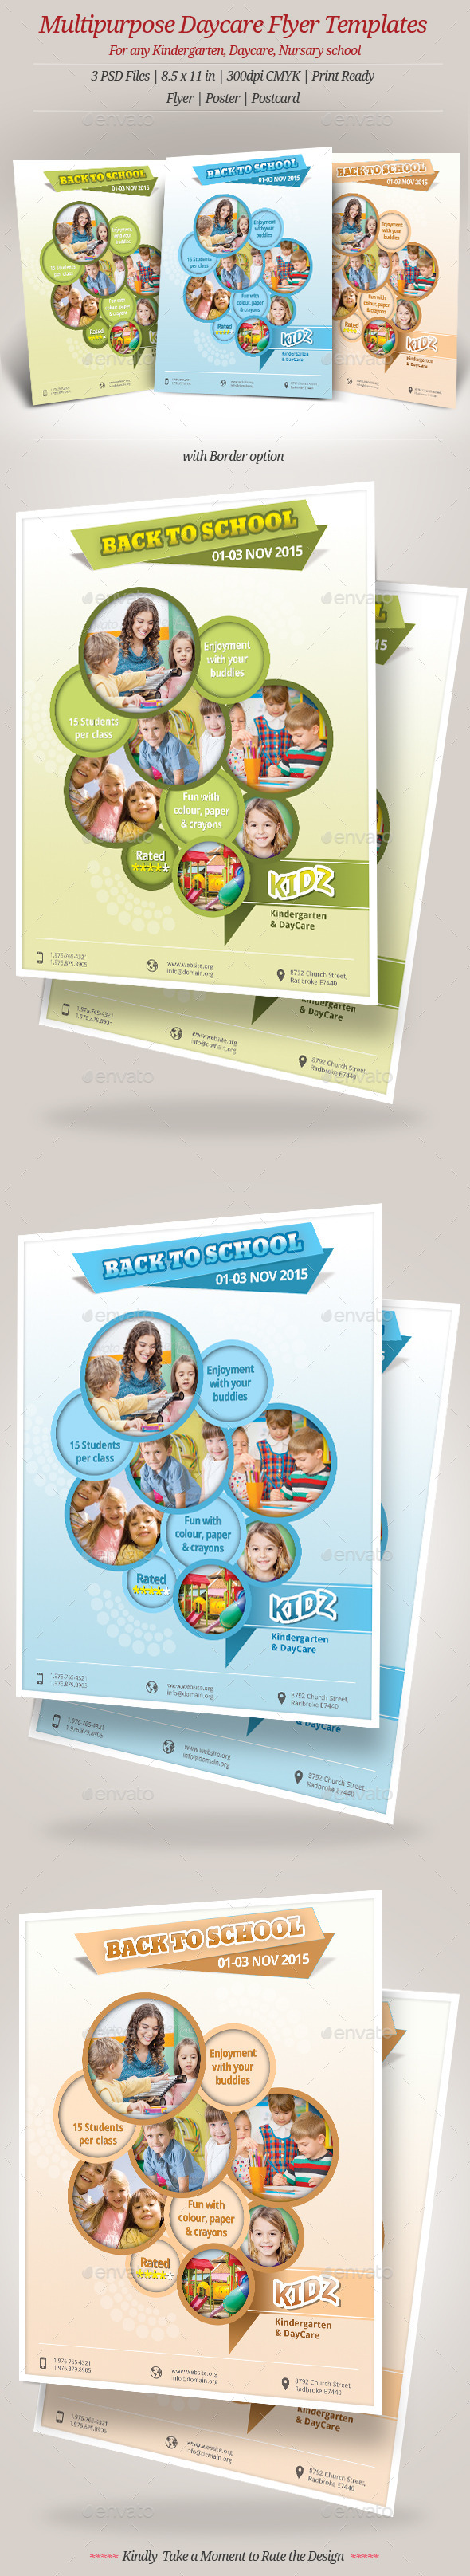 GraphicRiver Multipurpose Daycare Flyer Templates 8904490